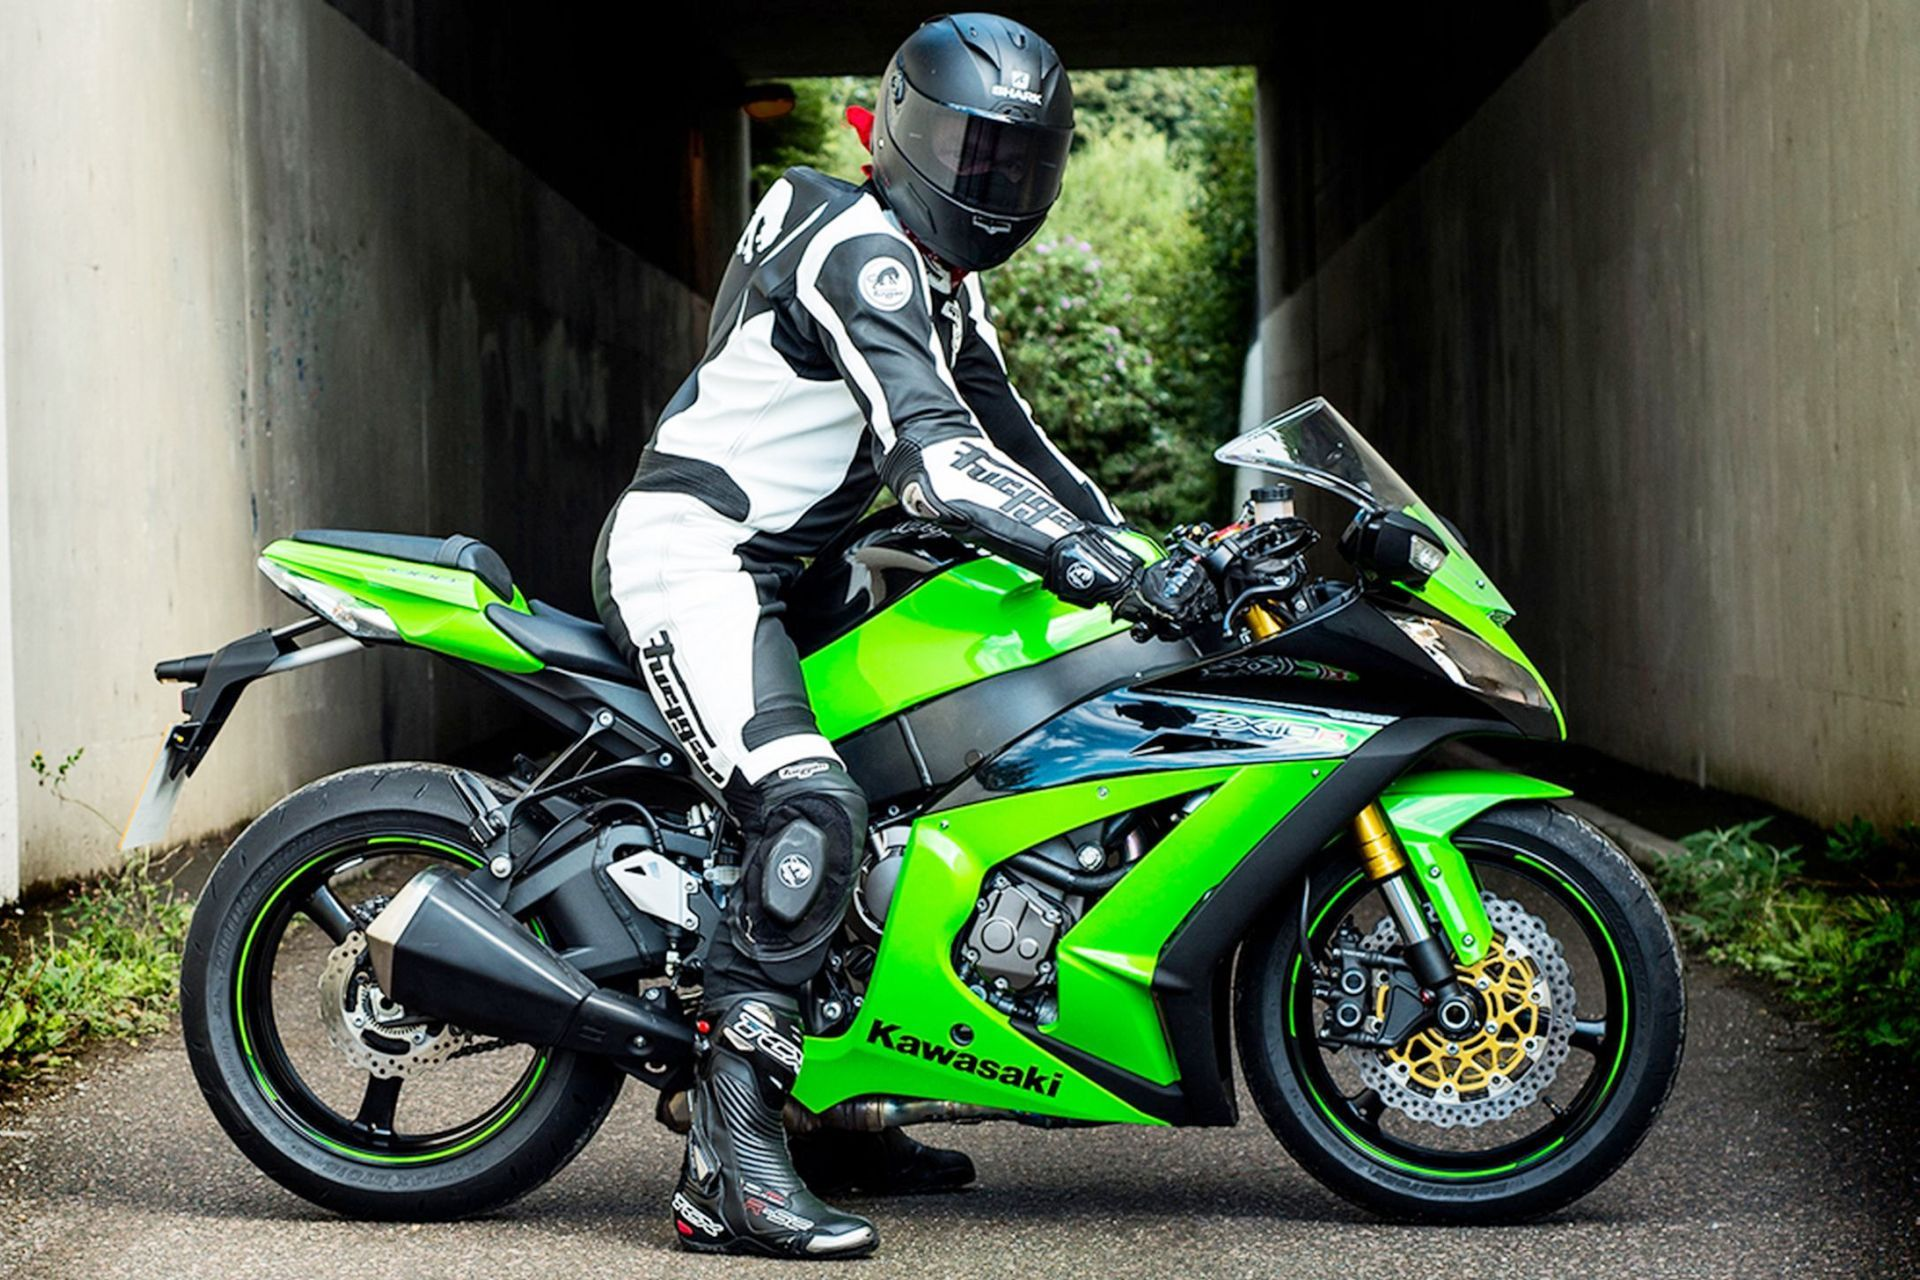 2015 kawasaki ninja zx 10r wide wallpaper motorcycles hd wallpaper pinterest kawasaki. Black Bedroom Furniture Sets. Home Design Ideas